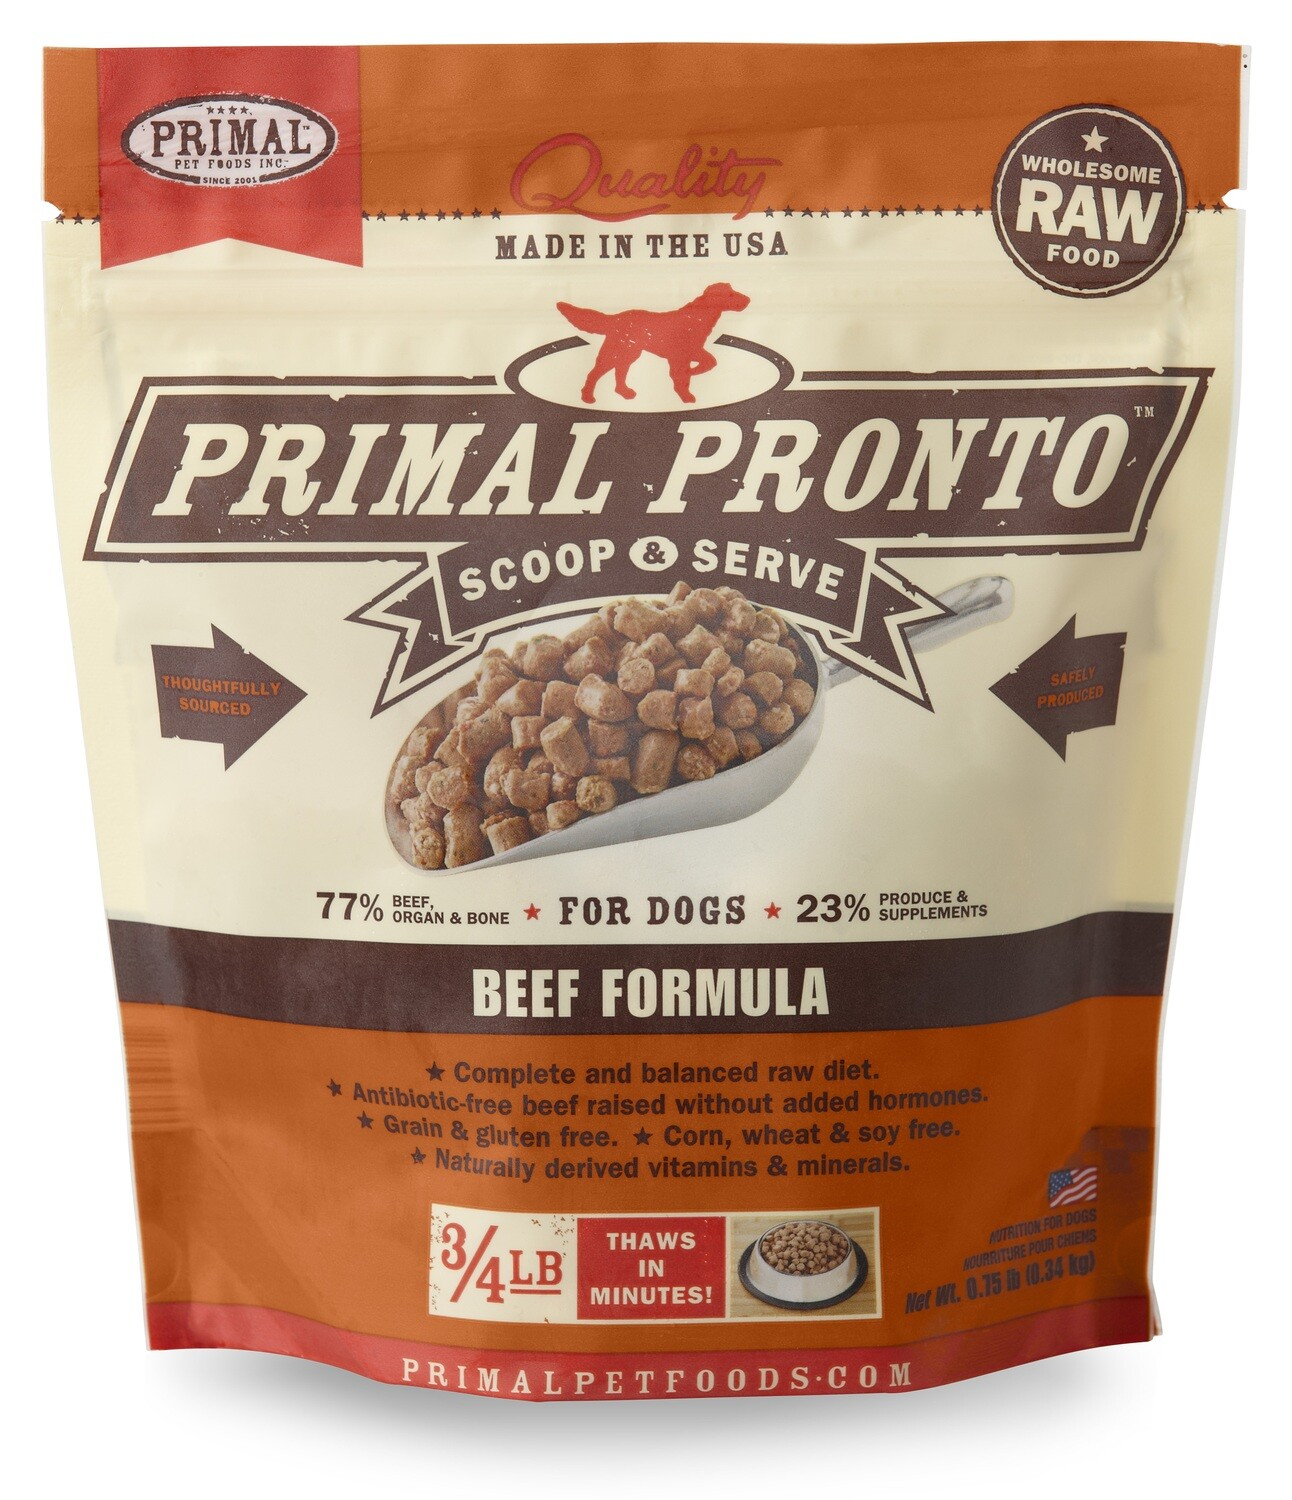 Primal Dog Pronto Scoop & Serve 3/4lb Beef